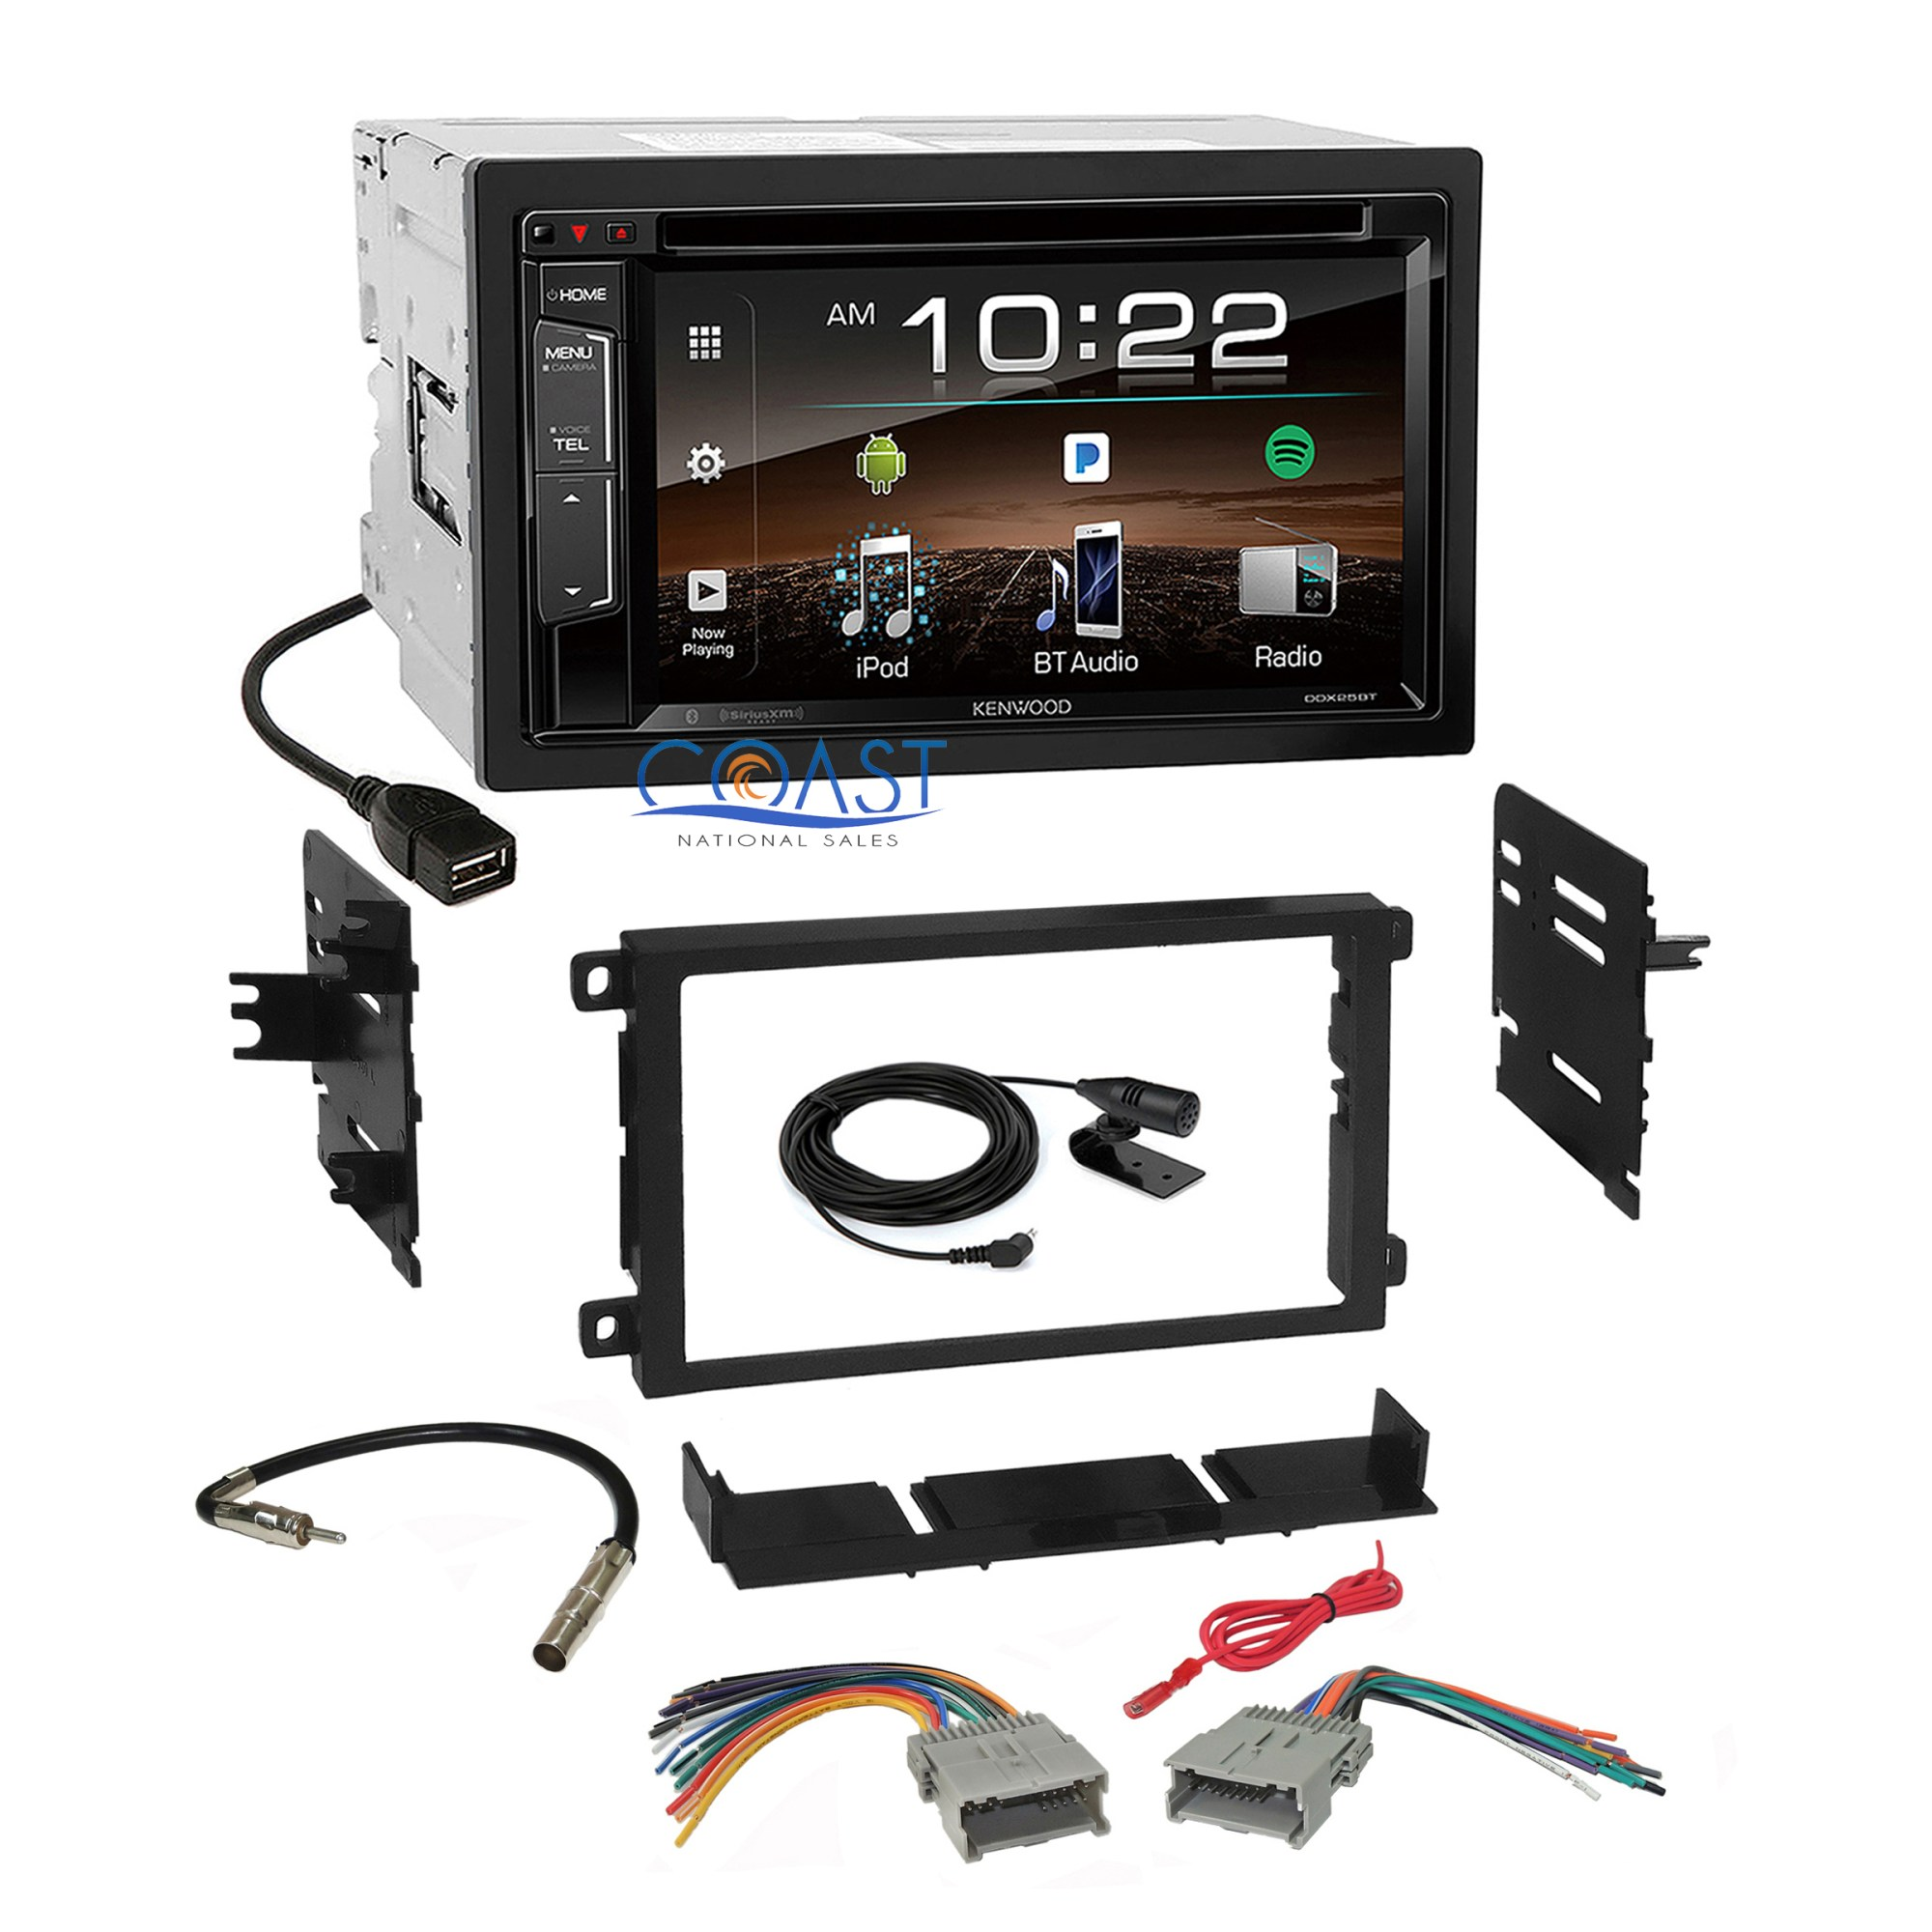 hight resolution of details about kenwood dvd bluetooth sirius stereo dash kit harness for 92 chevy gmc pontiac